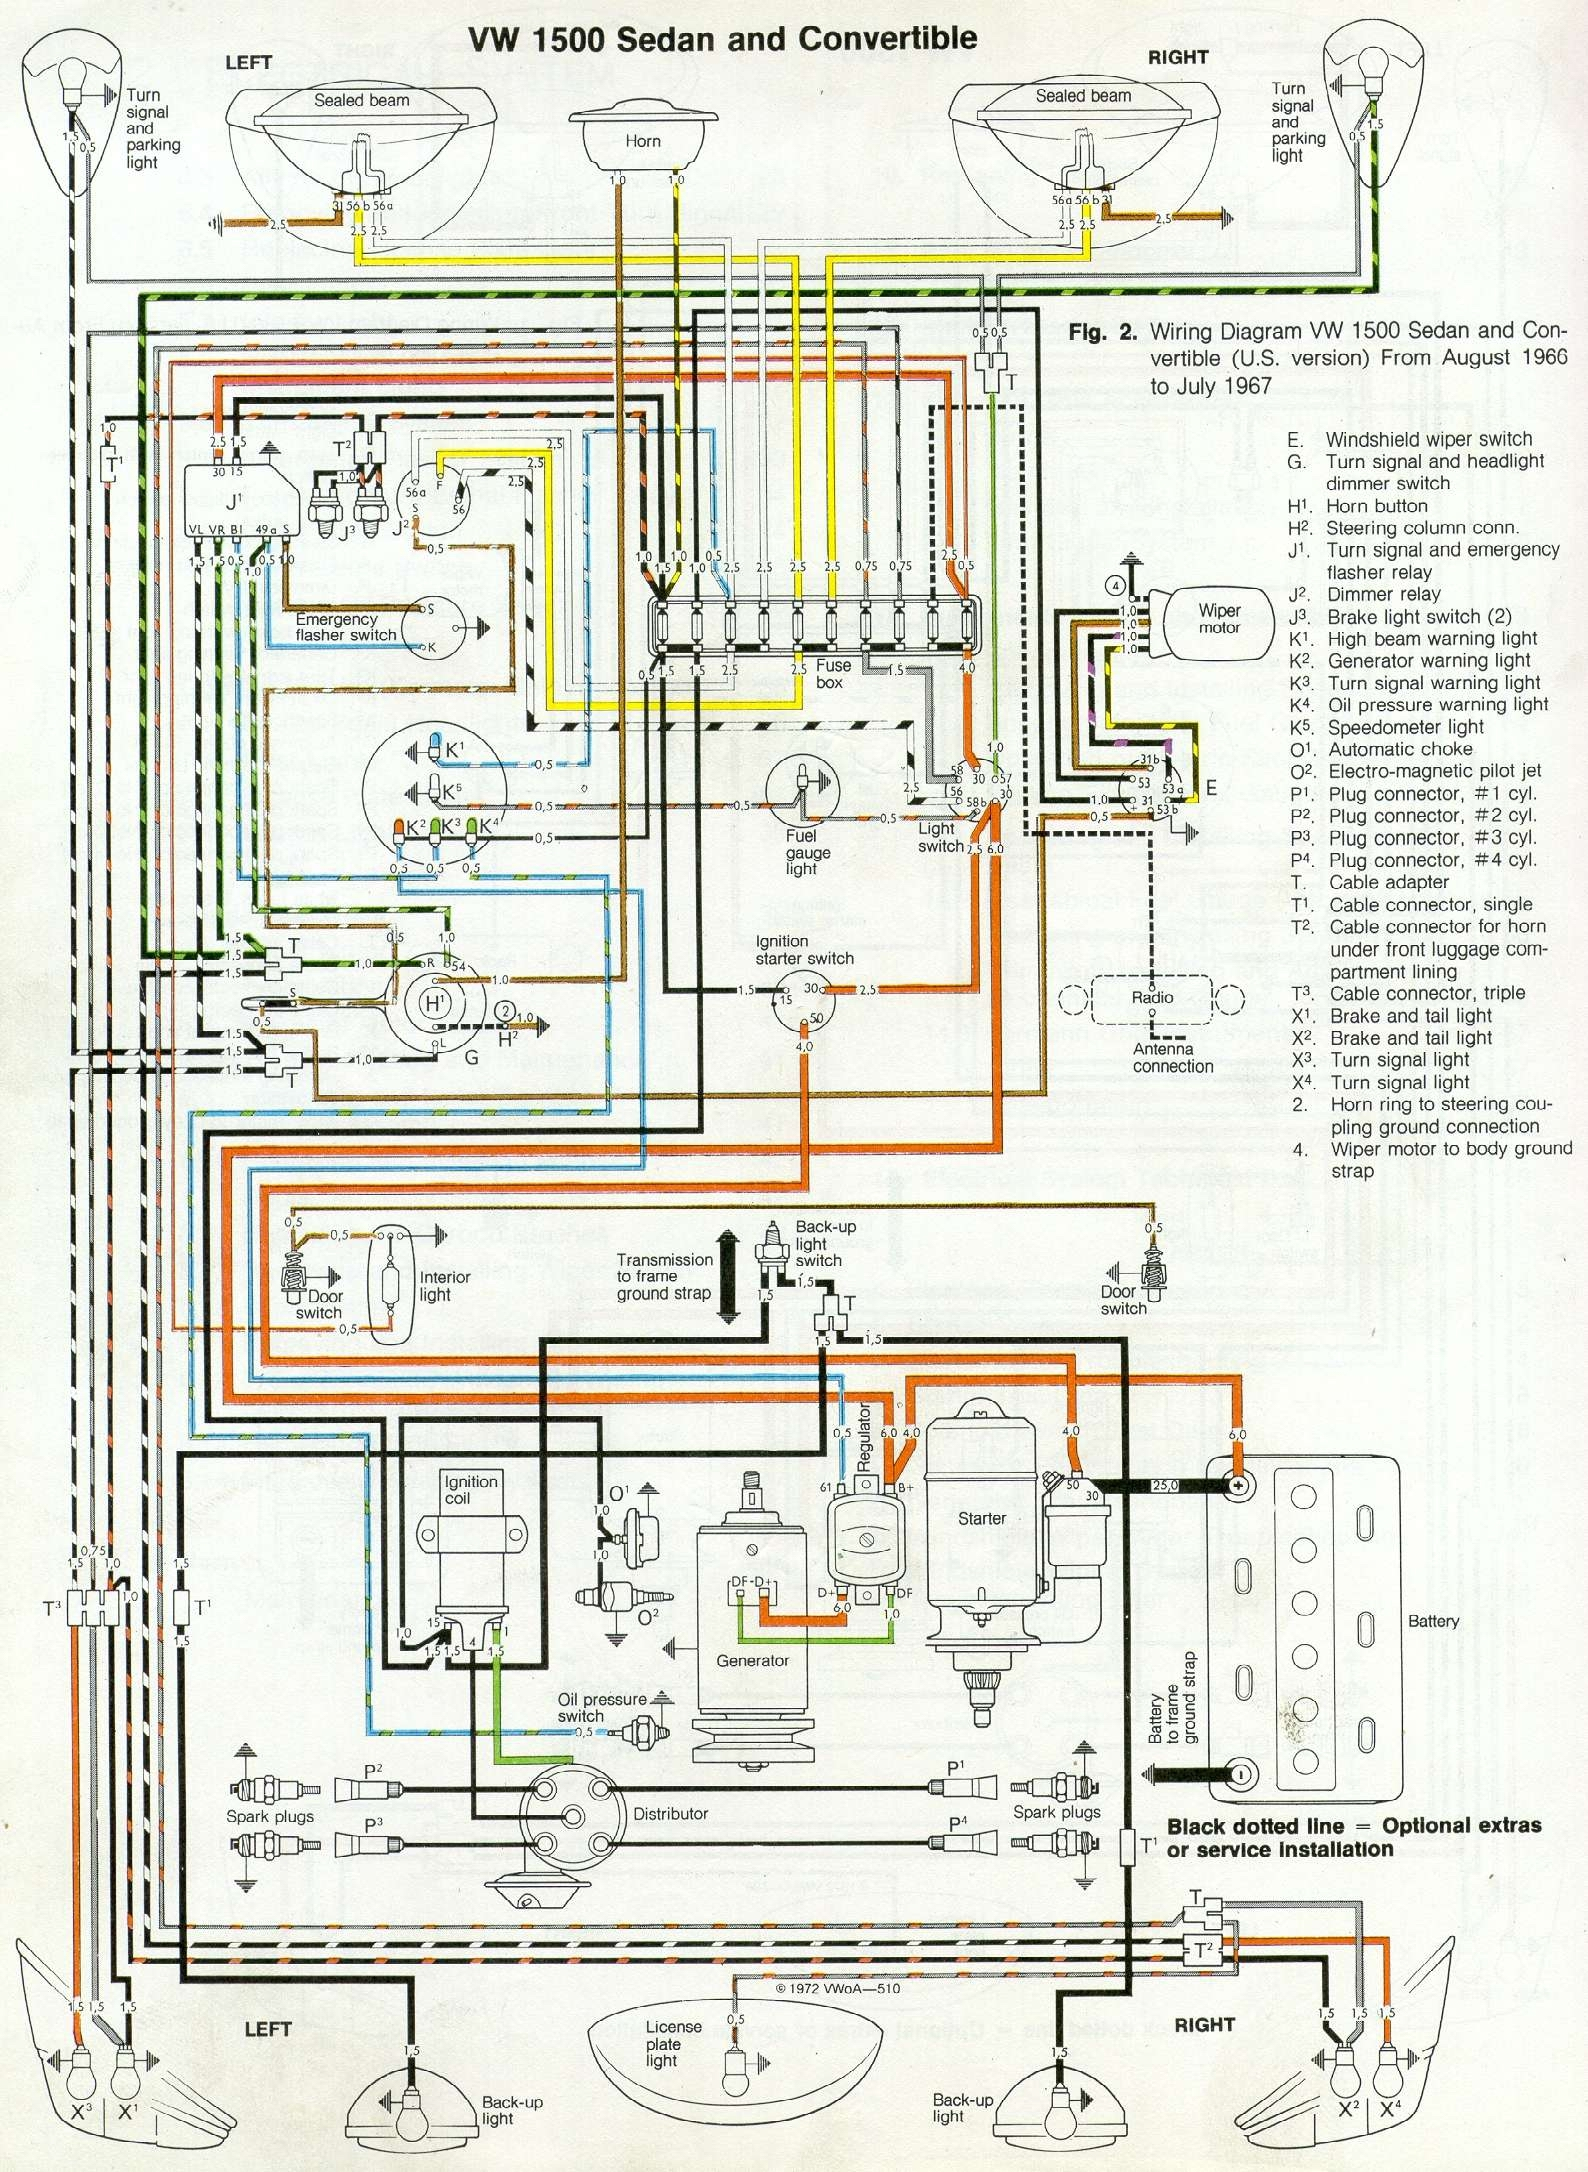 66 and 67 vw beetle wiring diagram 1967 vw beetle rh 1967beetle com 1965 VW Wiring Diagram 1965 VW Wiring Diagram